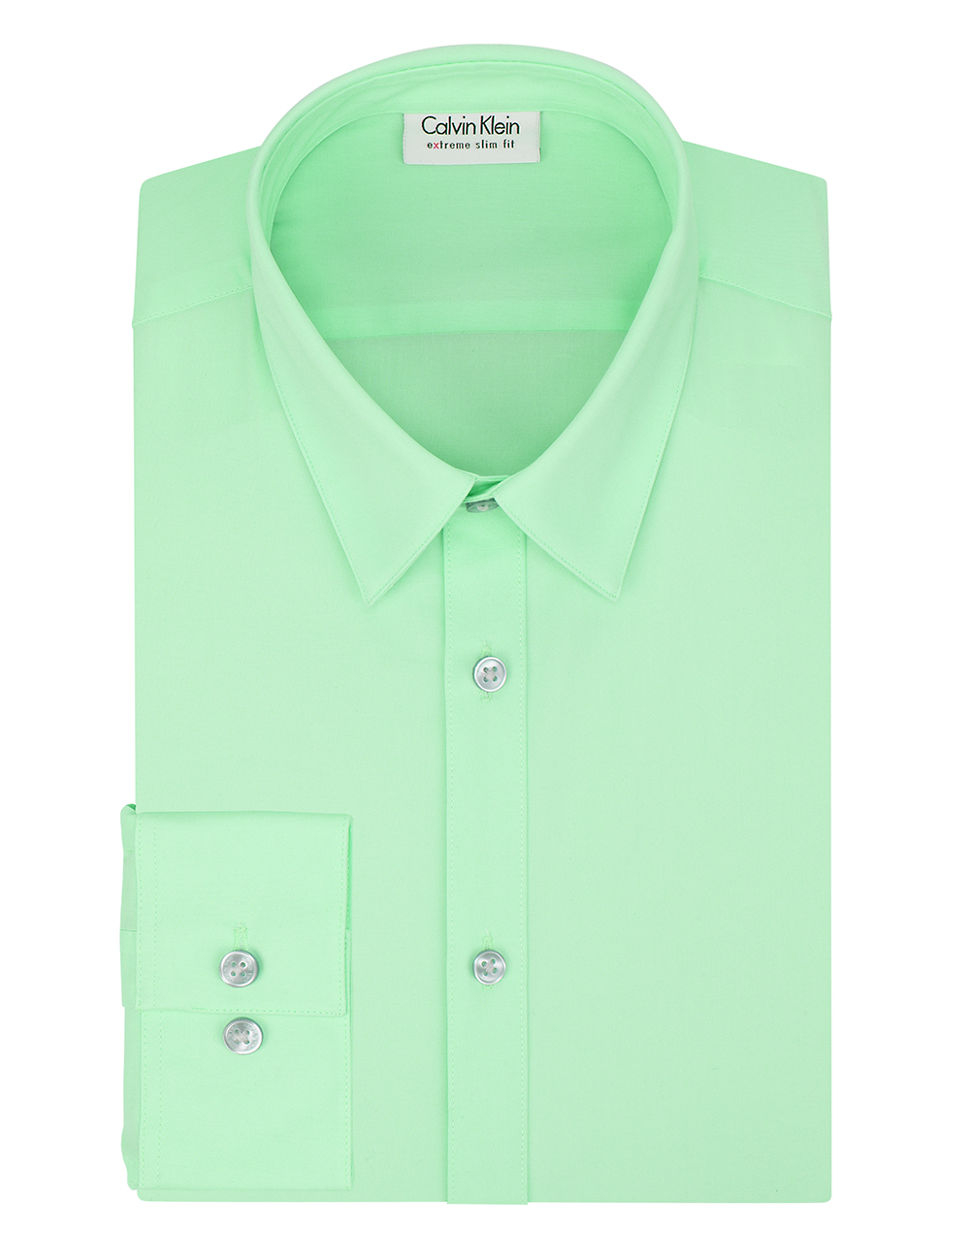 Lyst calvin klein slim fit dress shirt in green for men for Athletic fit dress shirts